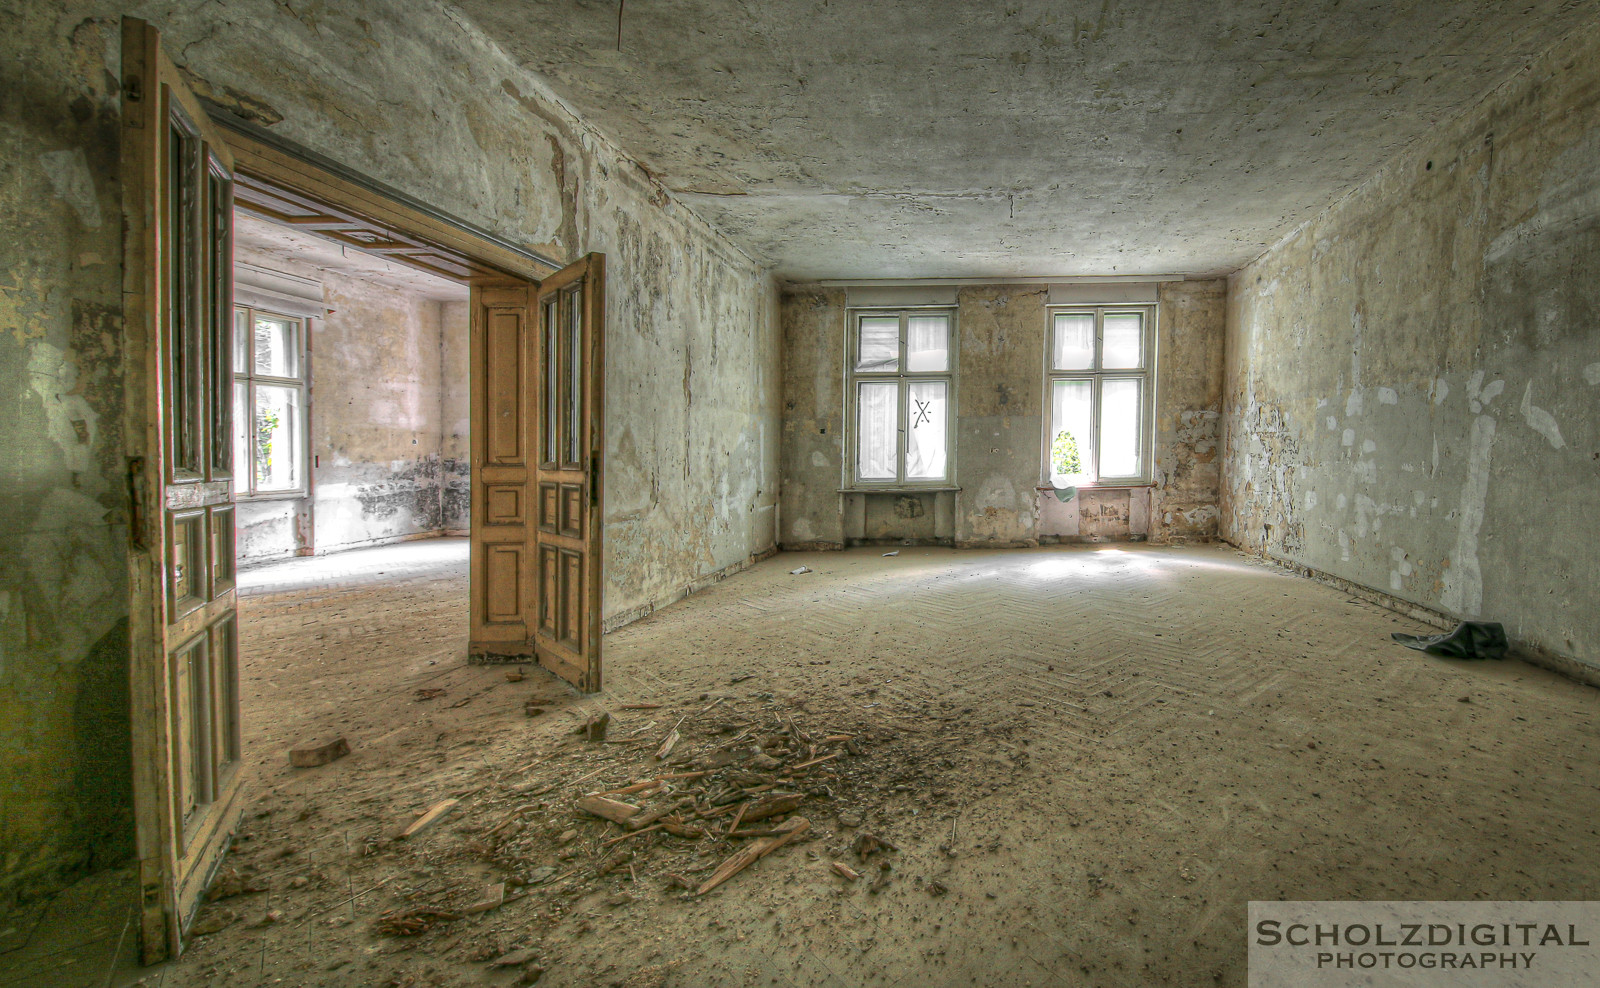 abandoned, Doctor Snuggles, Urbex, Urban exploration, decay, forgotten, lost, Lost Place, Sachsen, urban exploration, urbex, urbexlocatie, verlassen, Villa, Maison